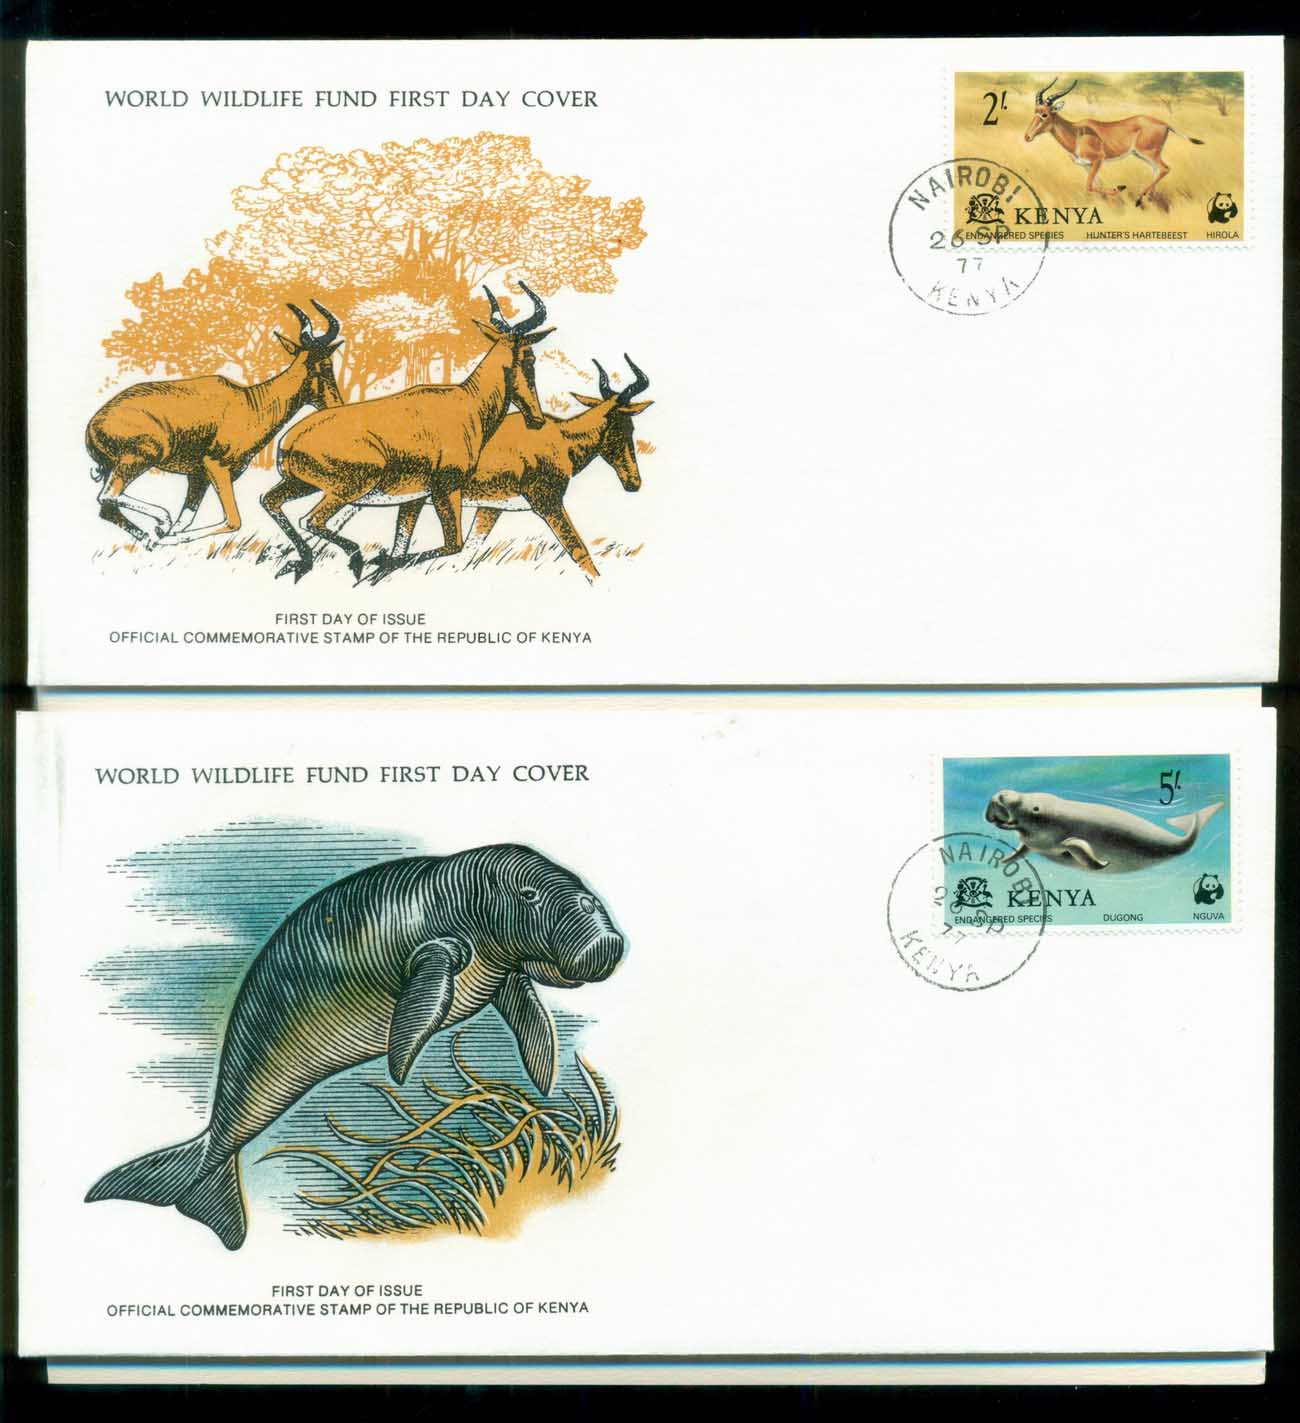 Kenya 1977 WWF,Hartbeeste, Dugong, Eland,Franlkin Mint (with inserts) 2xFDC lot79615